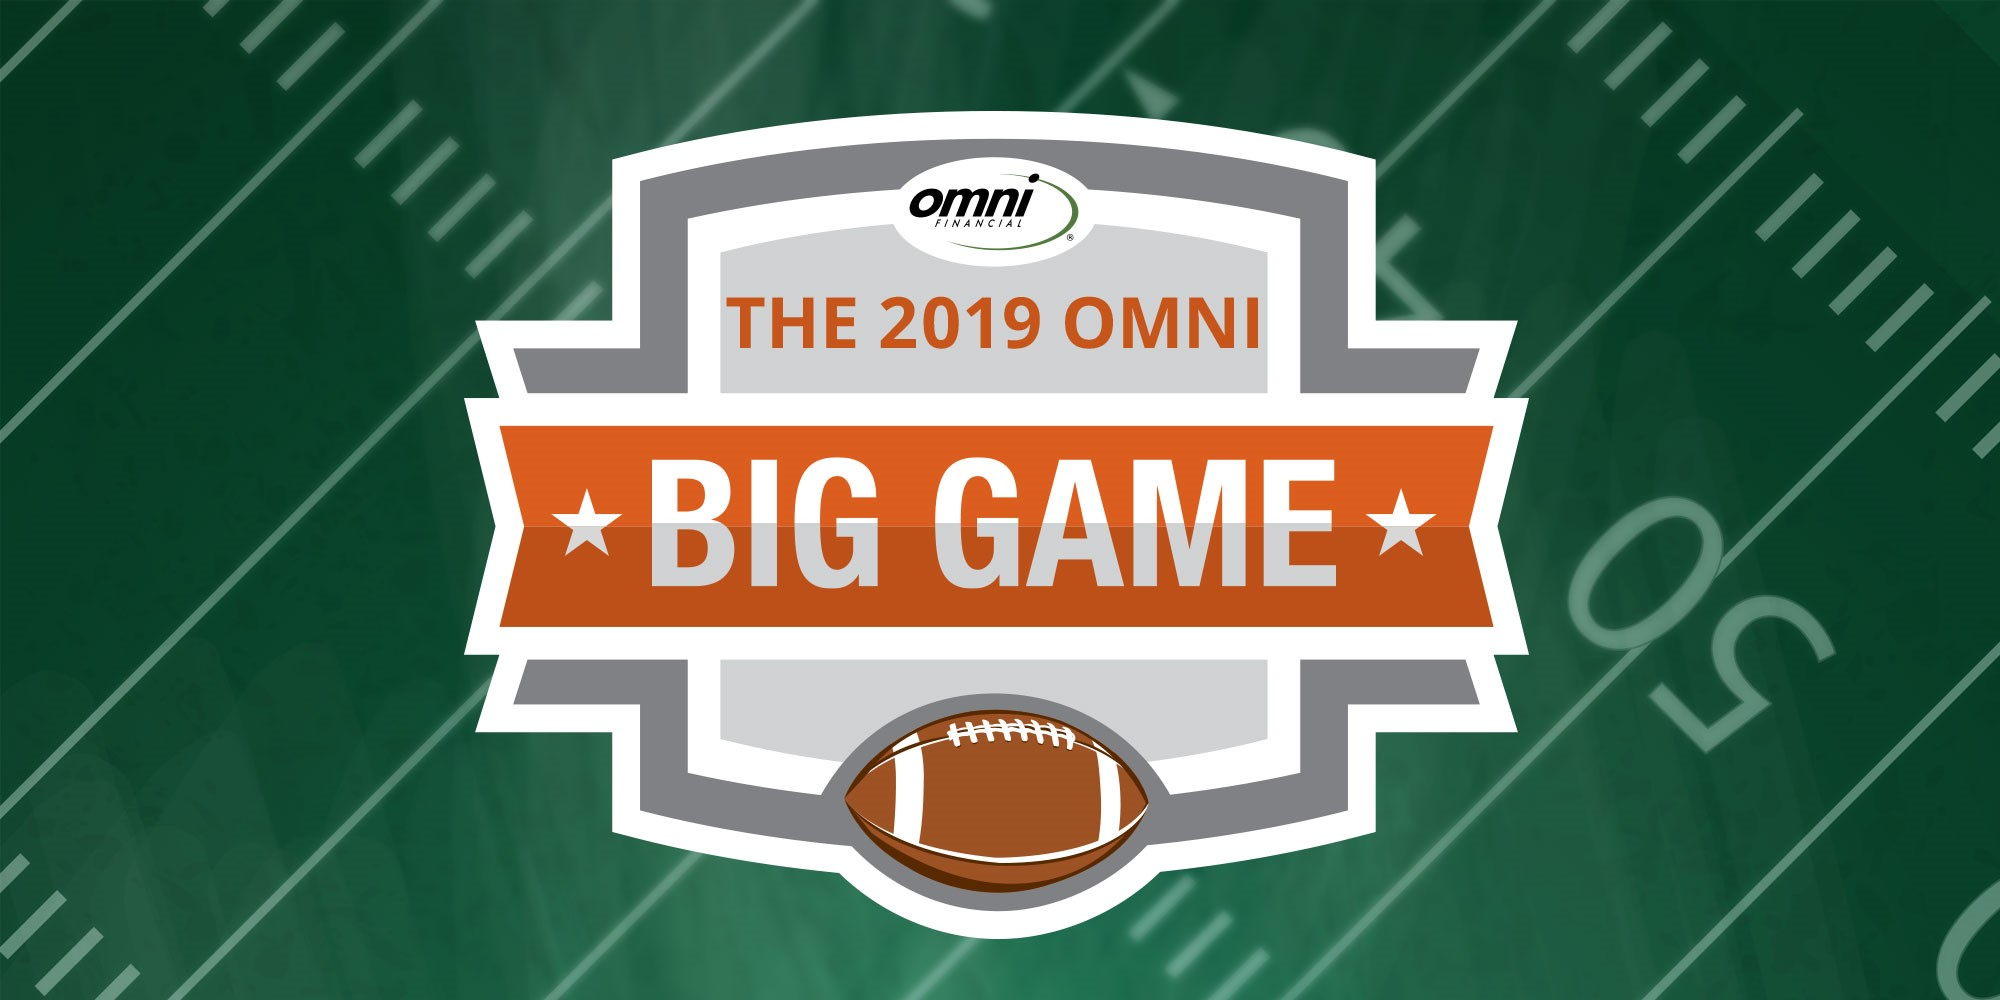 The Big Game 2019